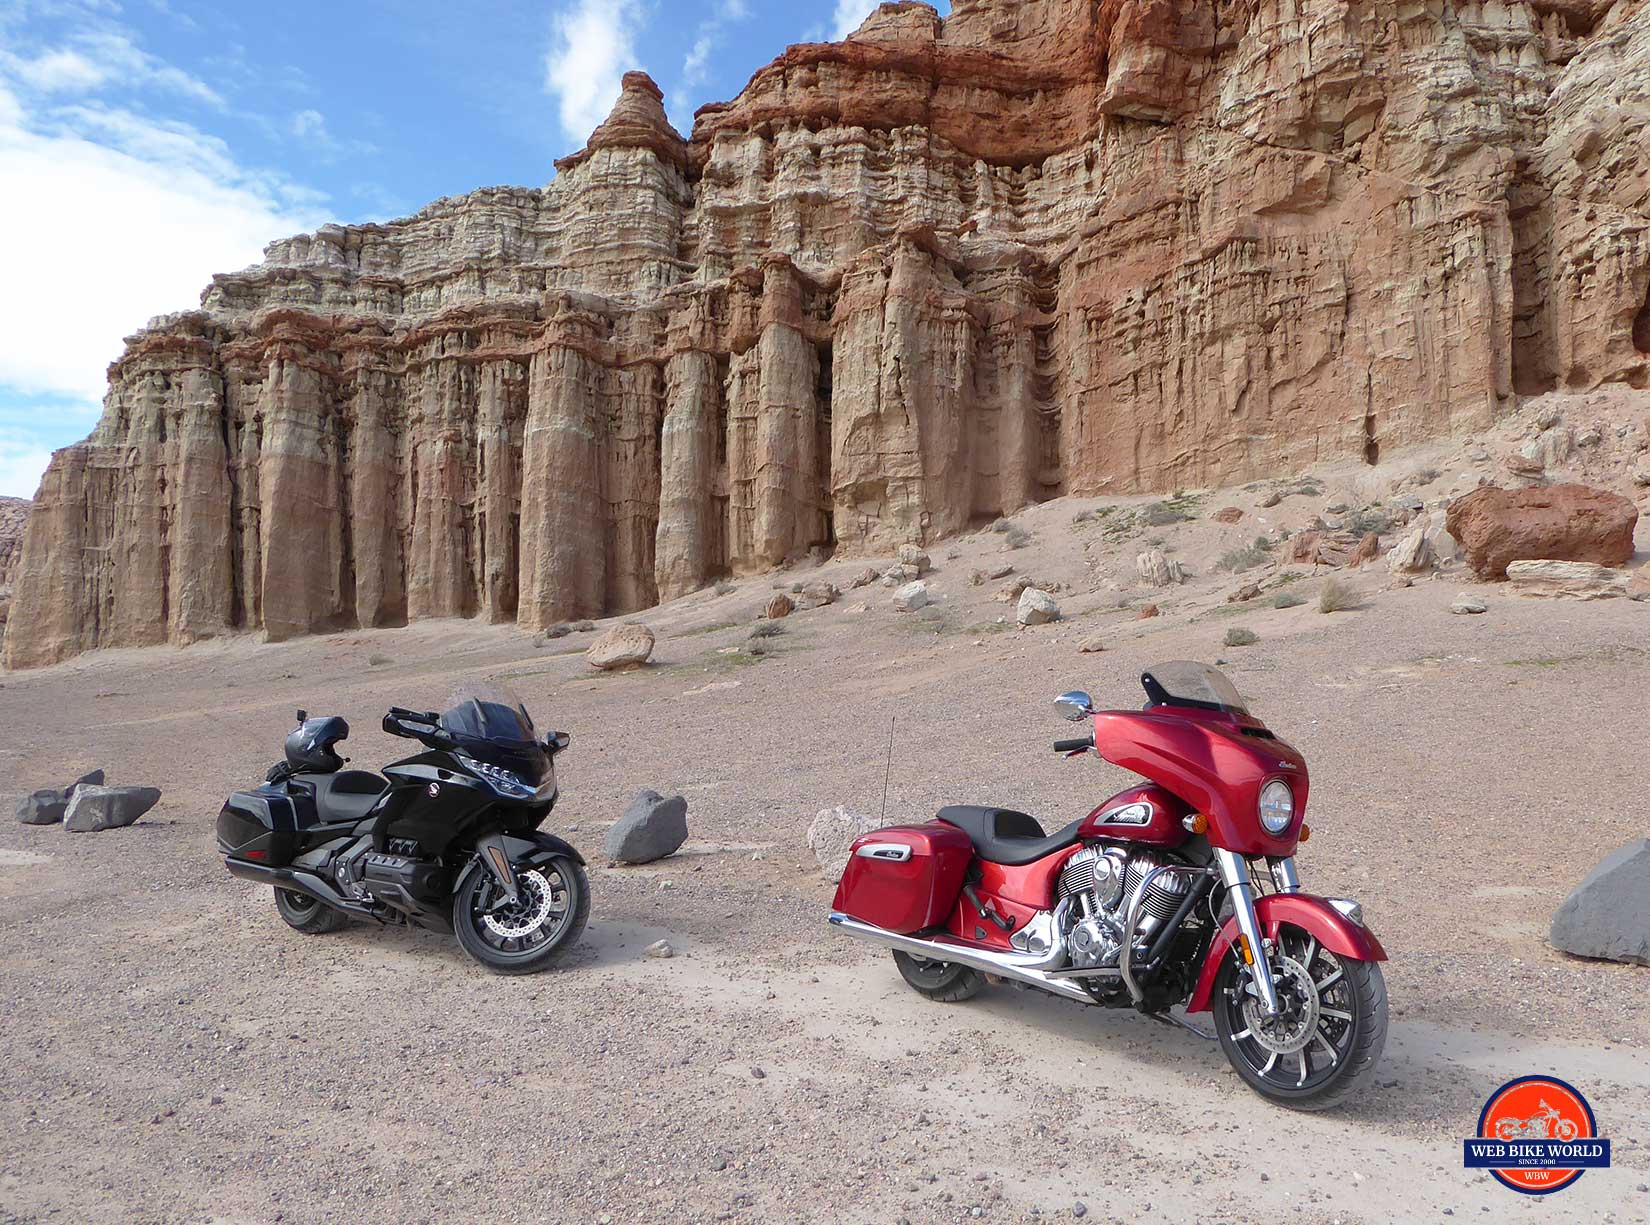 Honda Gold Wing DCT and Indian Chieftain ltd at Red Rock Canyon.